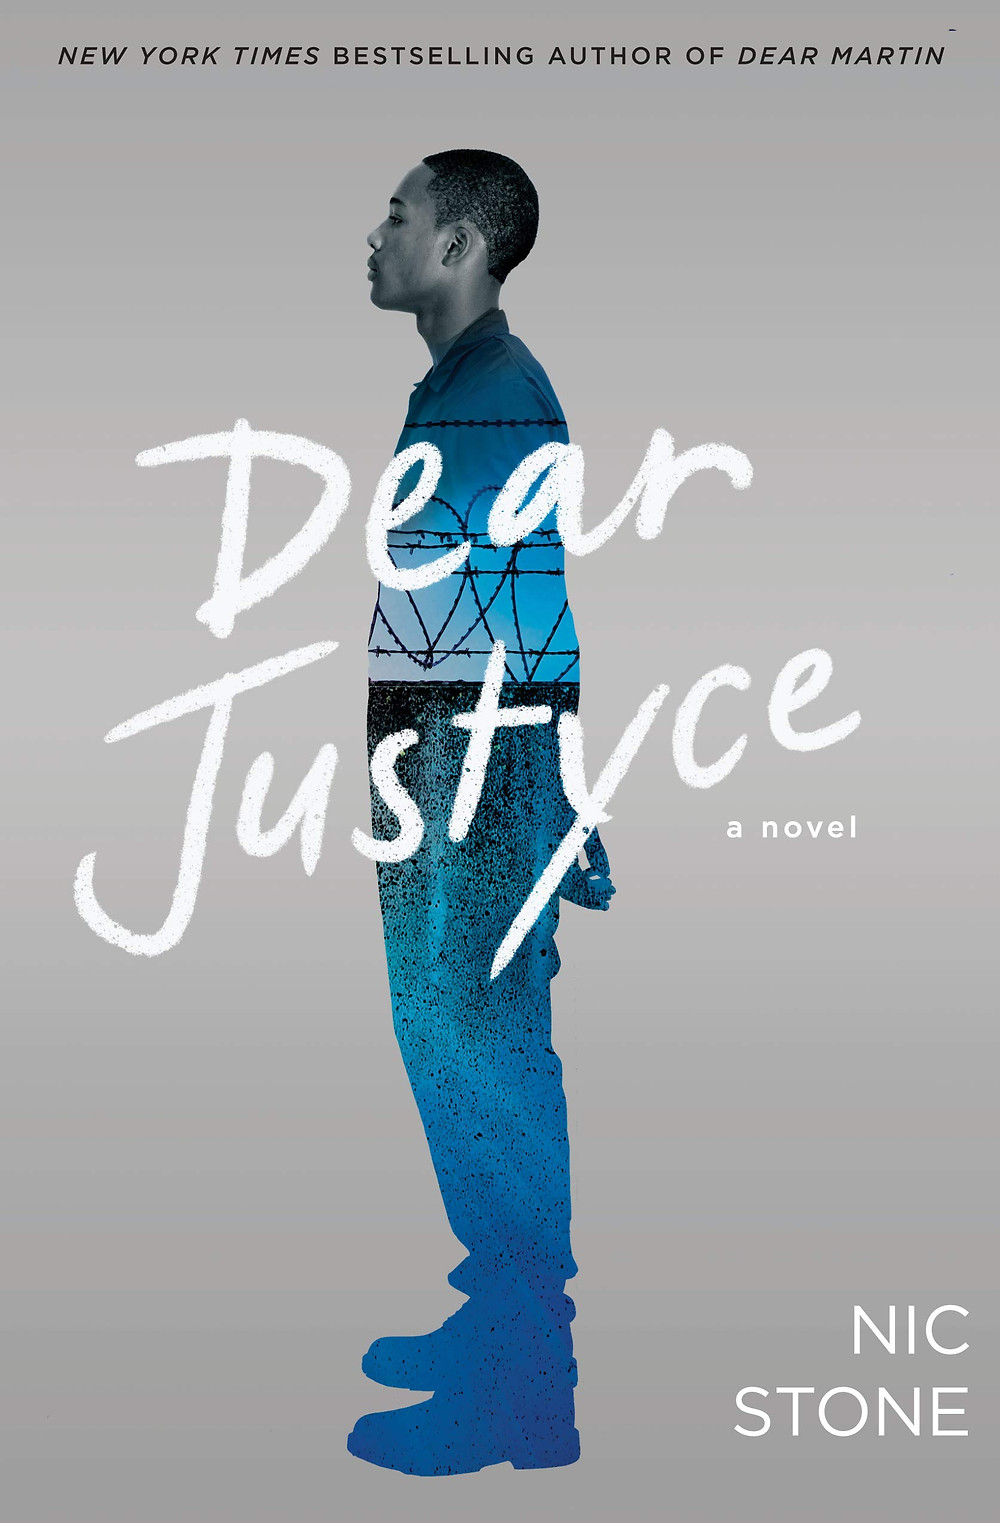 book cover of Nic Stone's Dear Justyce